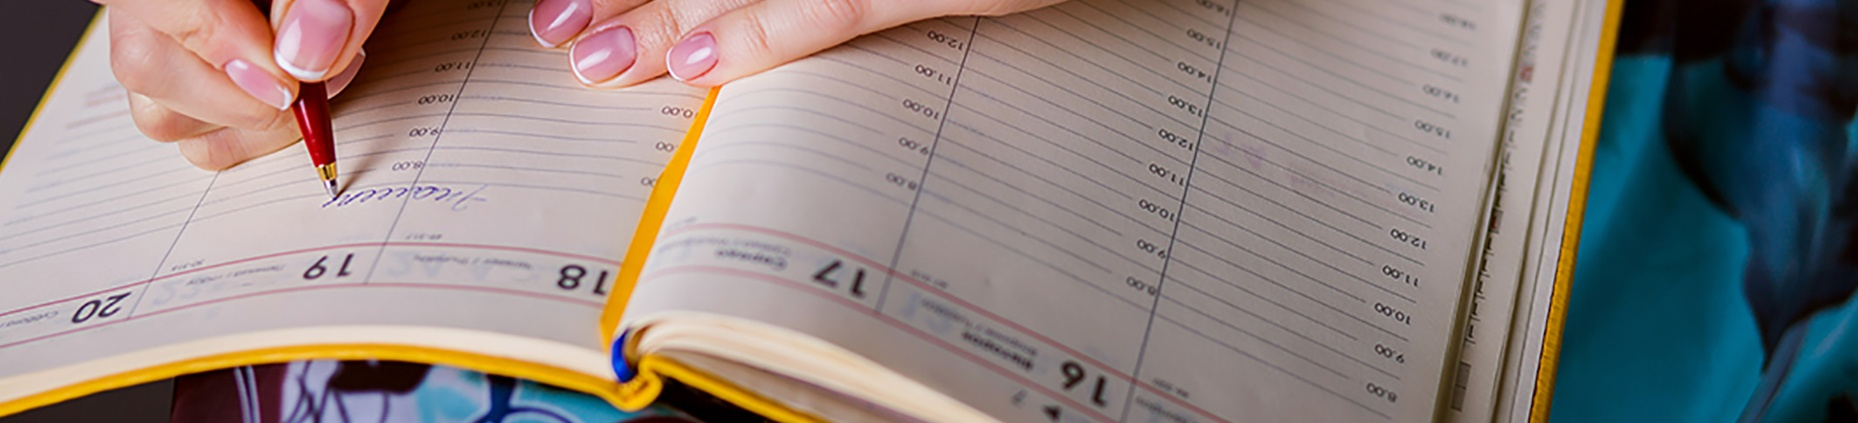 Maximizing the Effectiveness of Your TIME - How to Keep an Activity Log